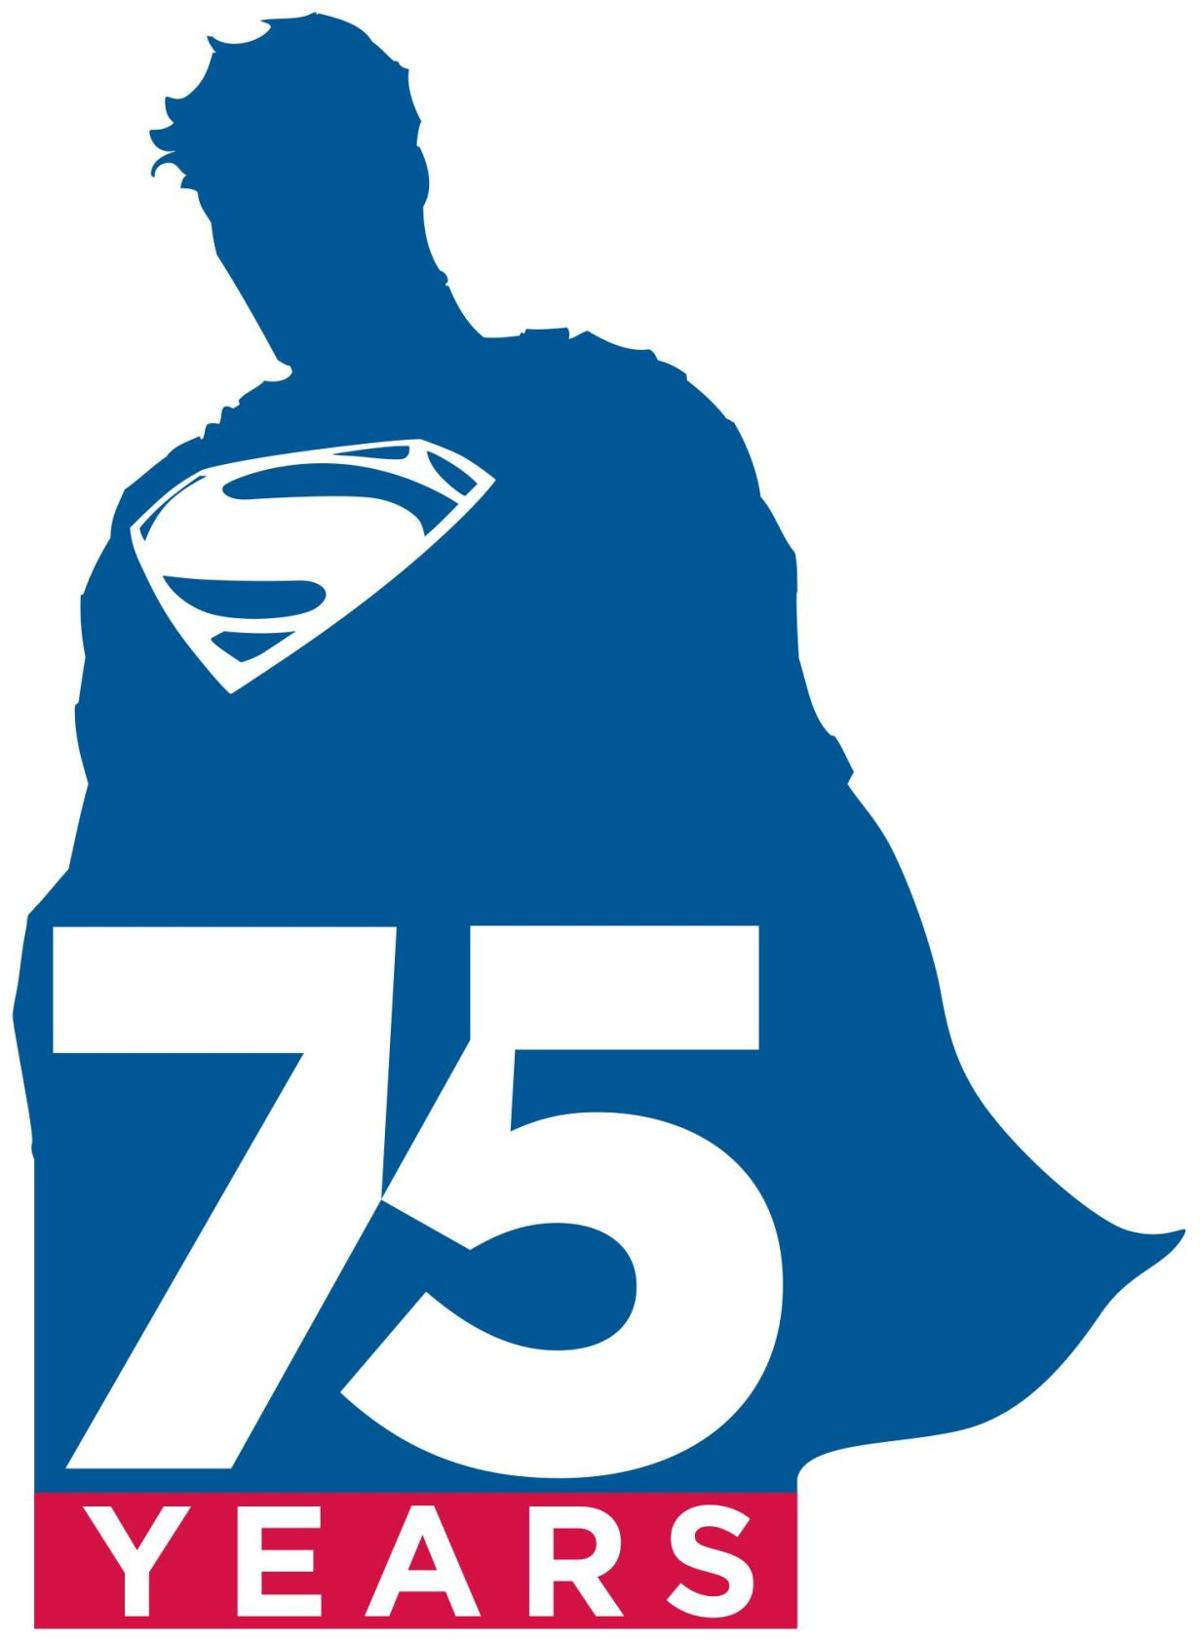 New logo marks 75th anniversary